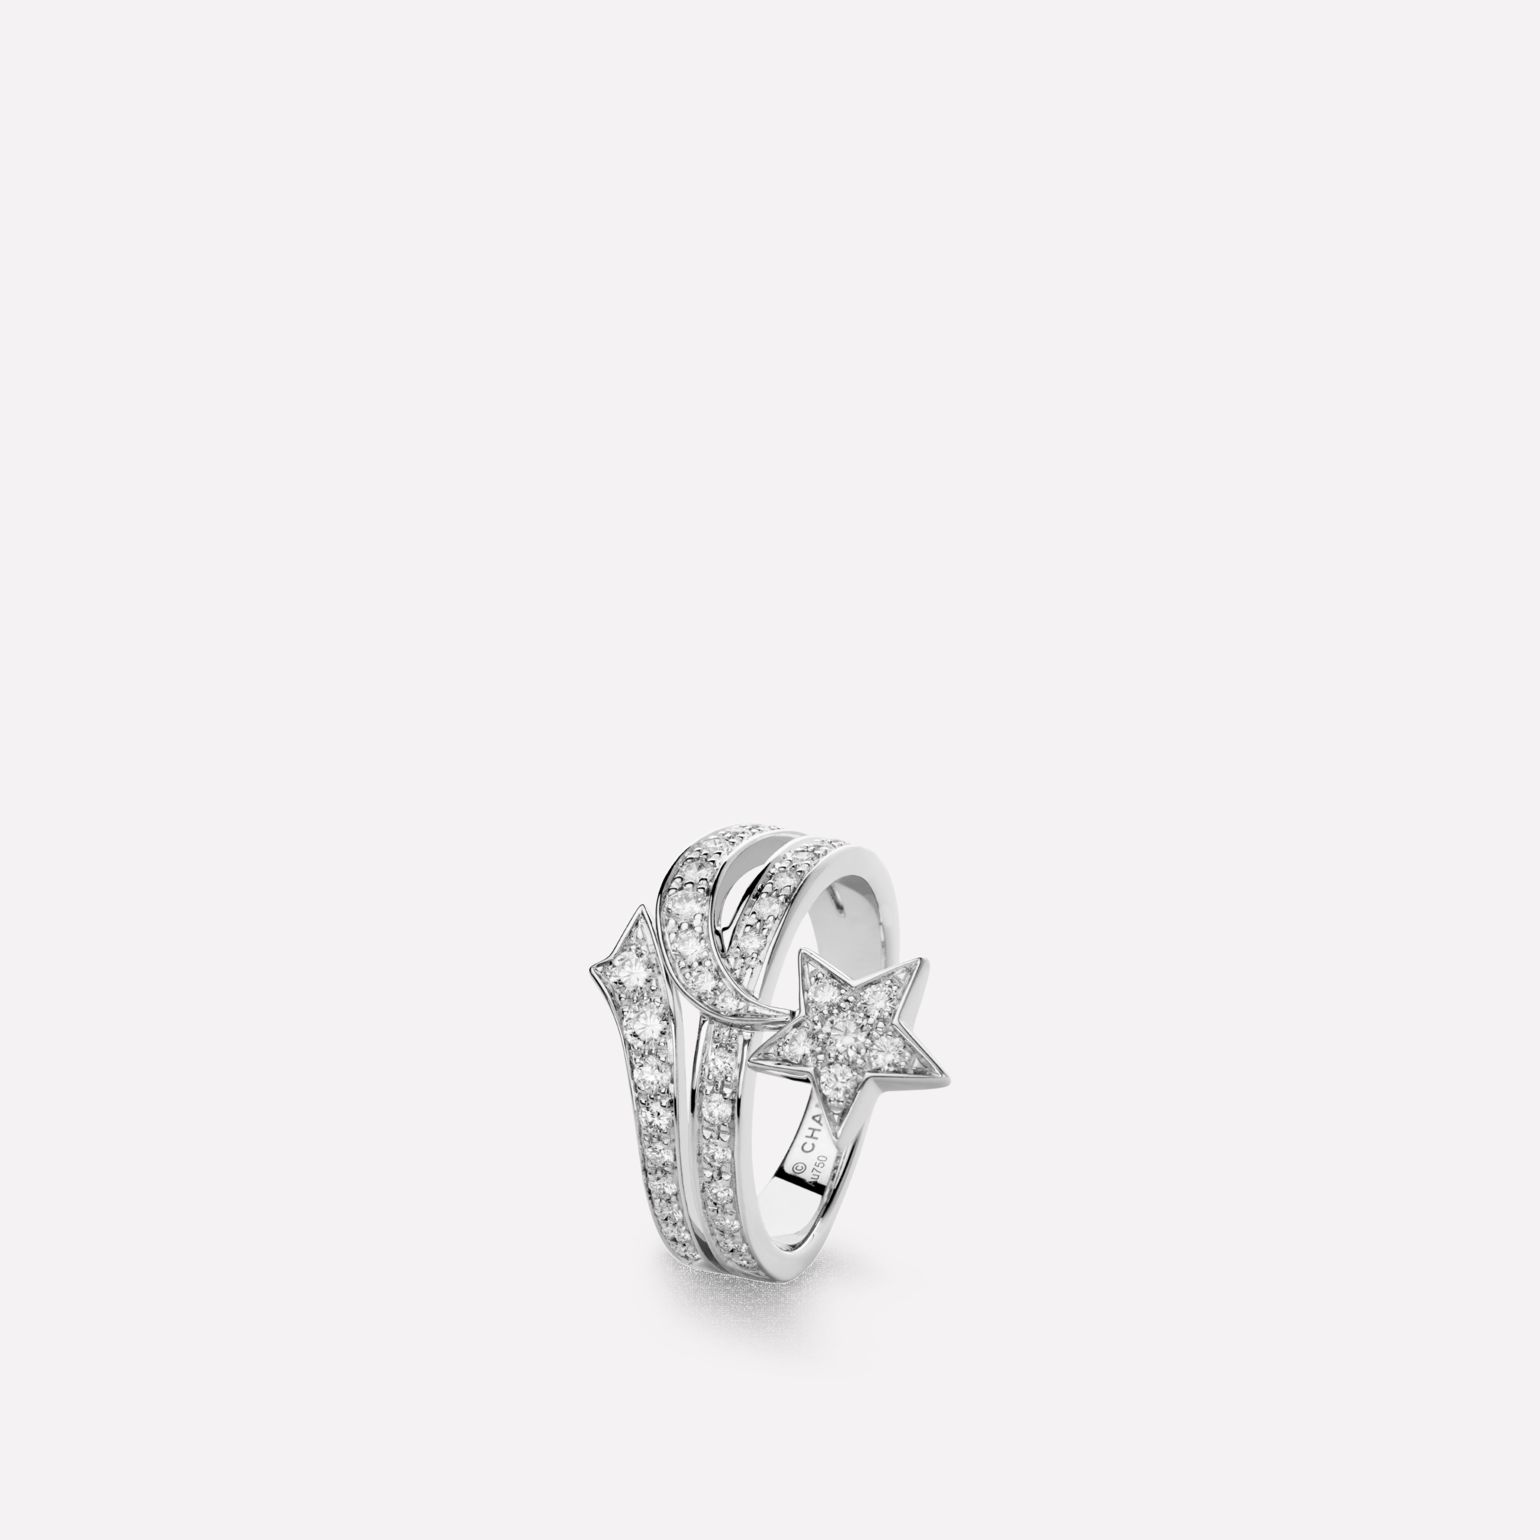 Étoile Filante ring 18K white gold, diamonds